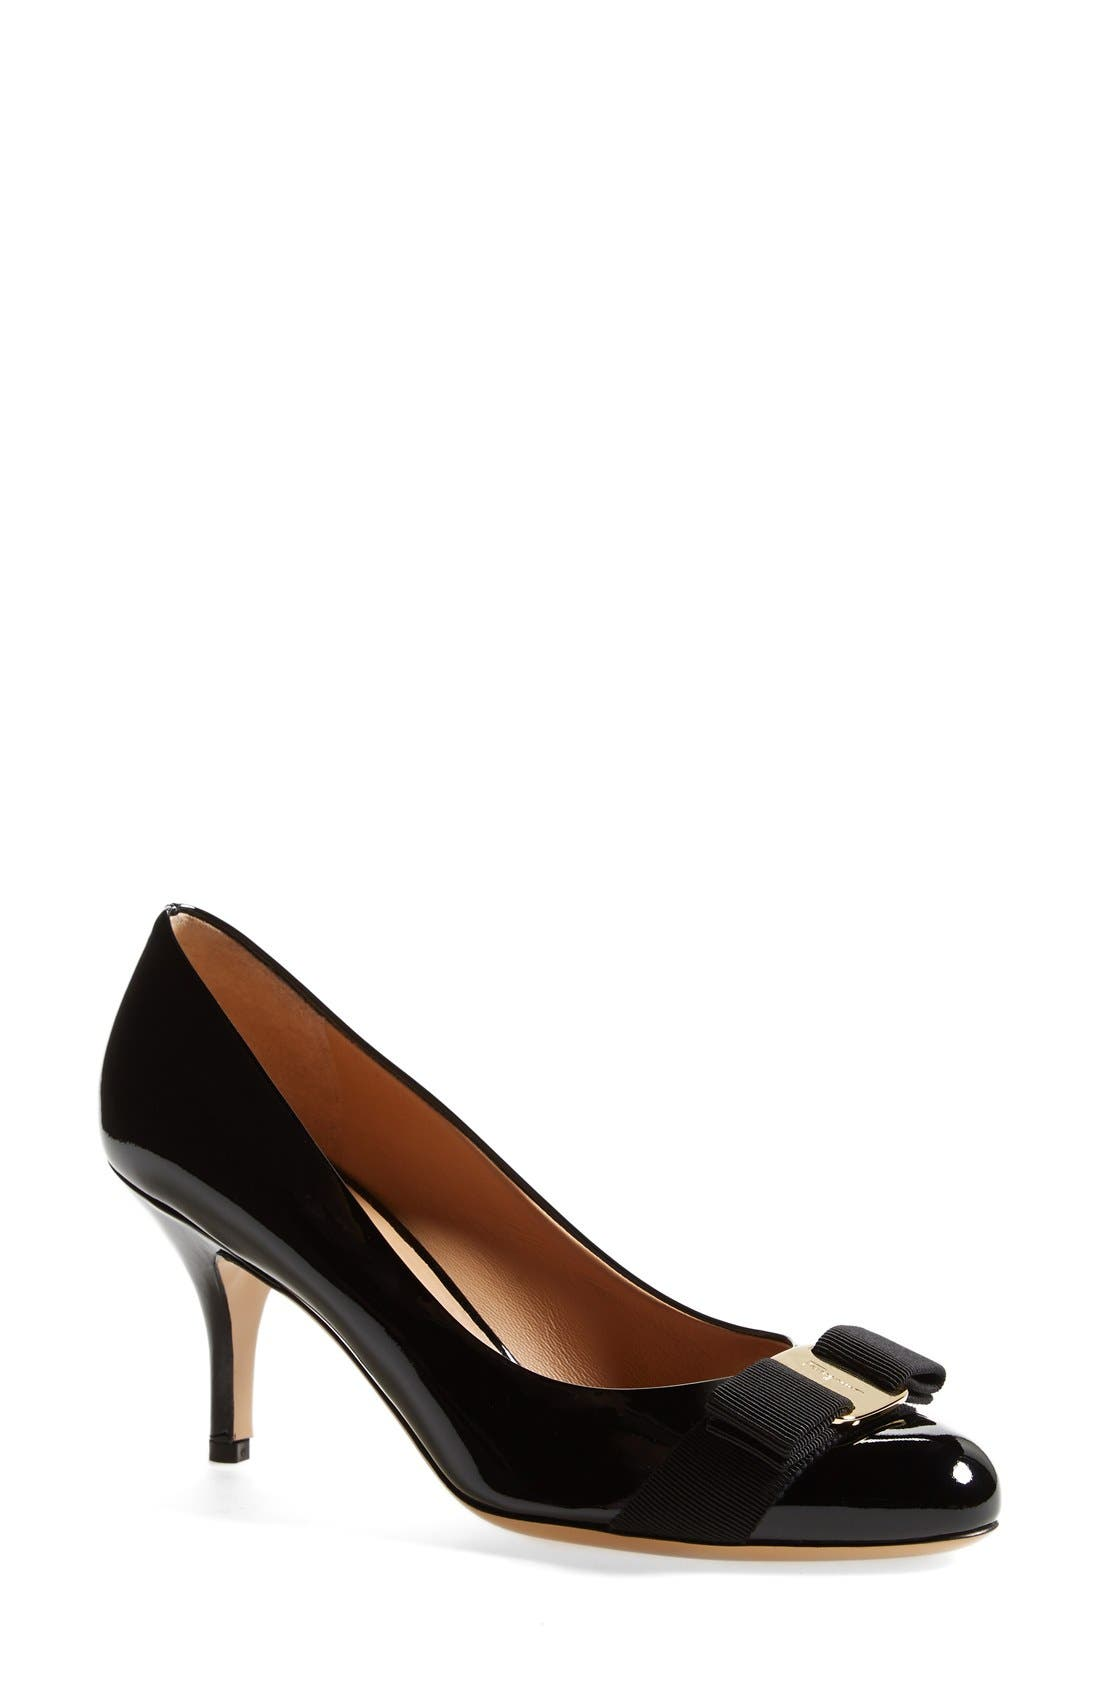 Alternate Image 1 Selected - Salvatore Ferragamo 'Carla' Patent Leather Pump (Women)